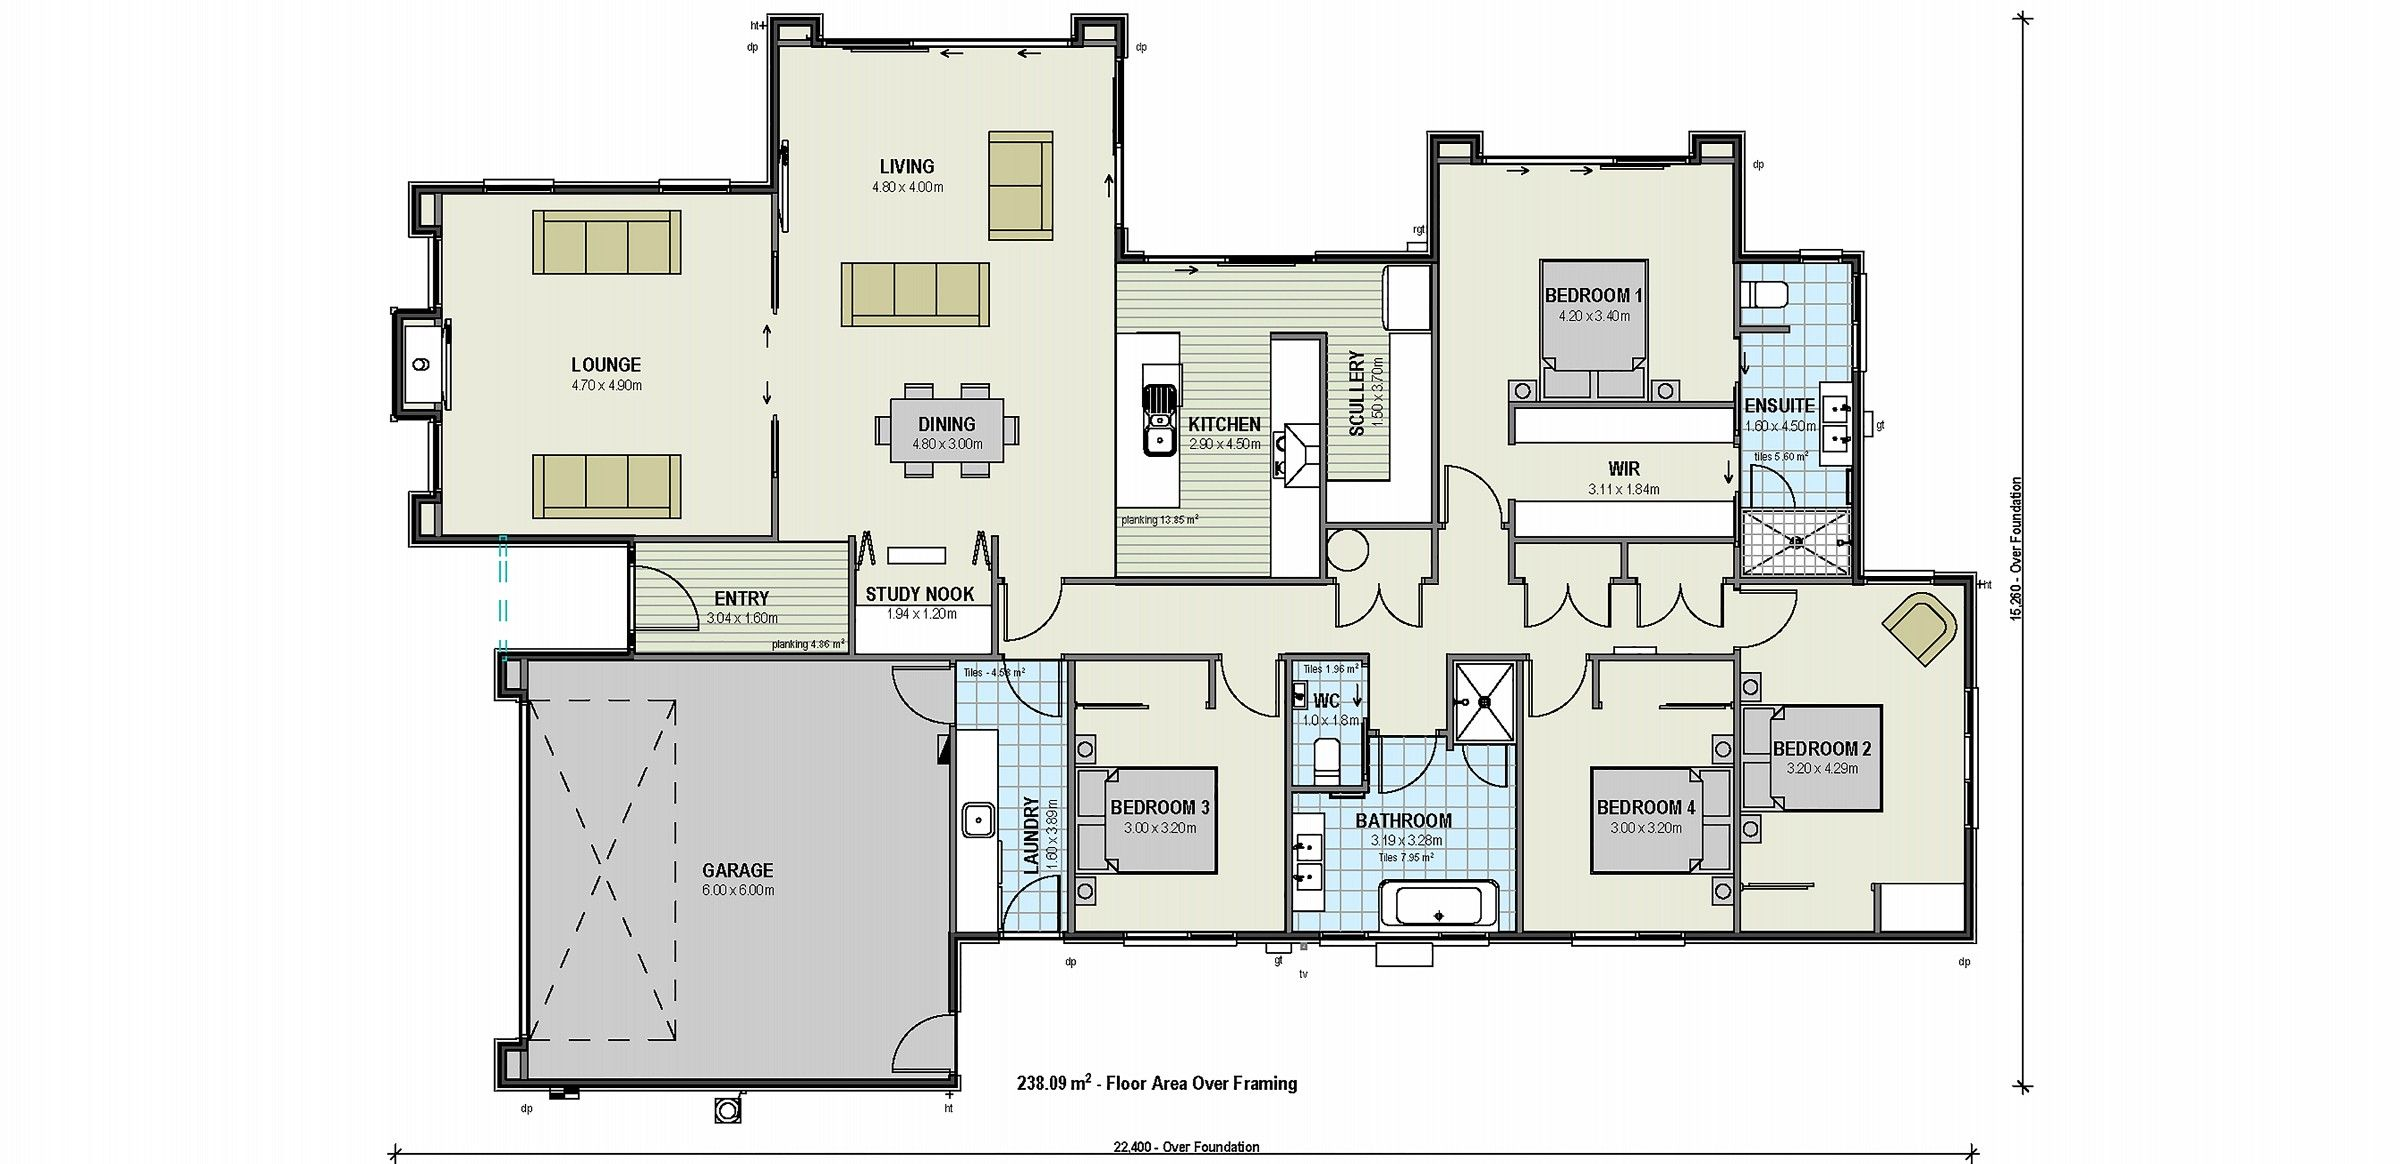 Mike Greer Homes Showhomes House Plans Australia Building Plans Home Building Companies